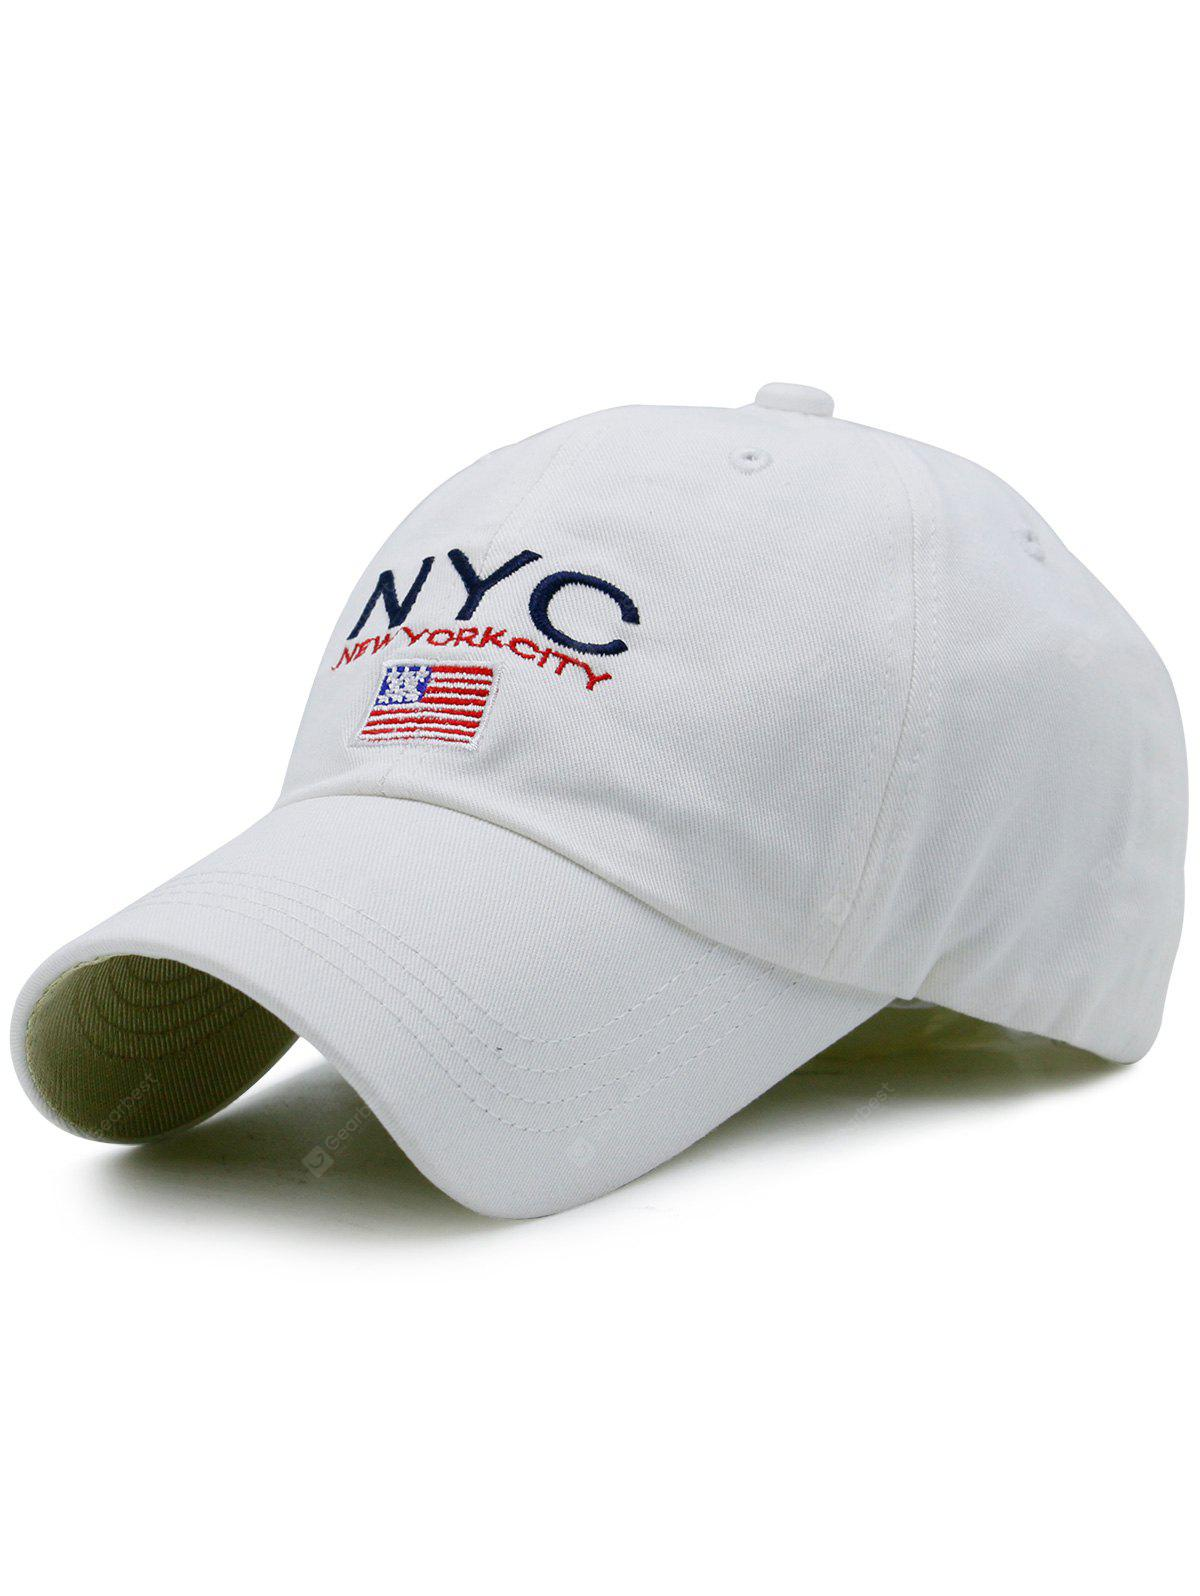 Flag and NYC Embroidery Baseball Hat